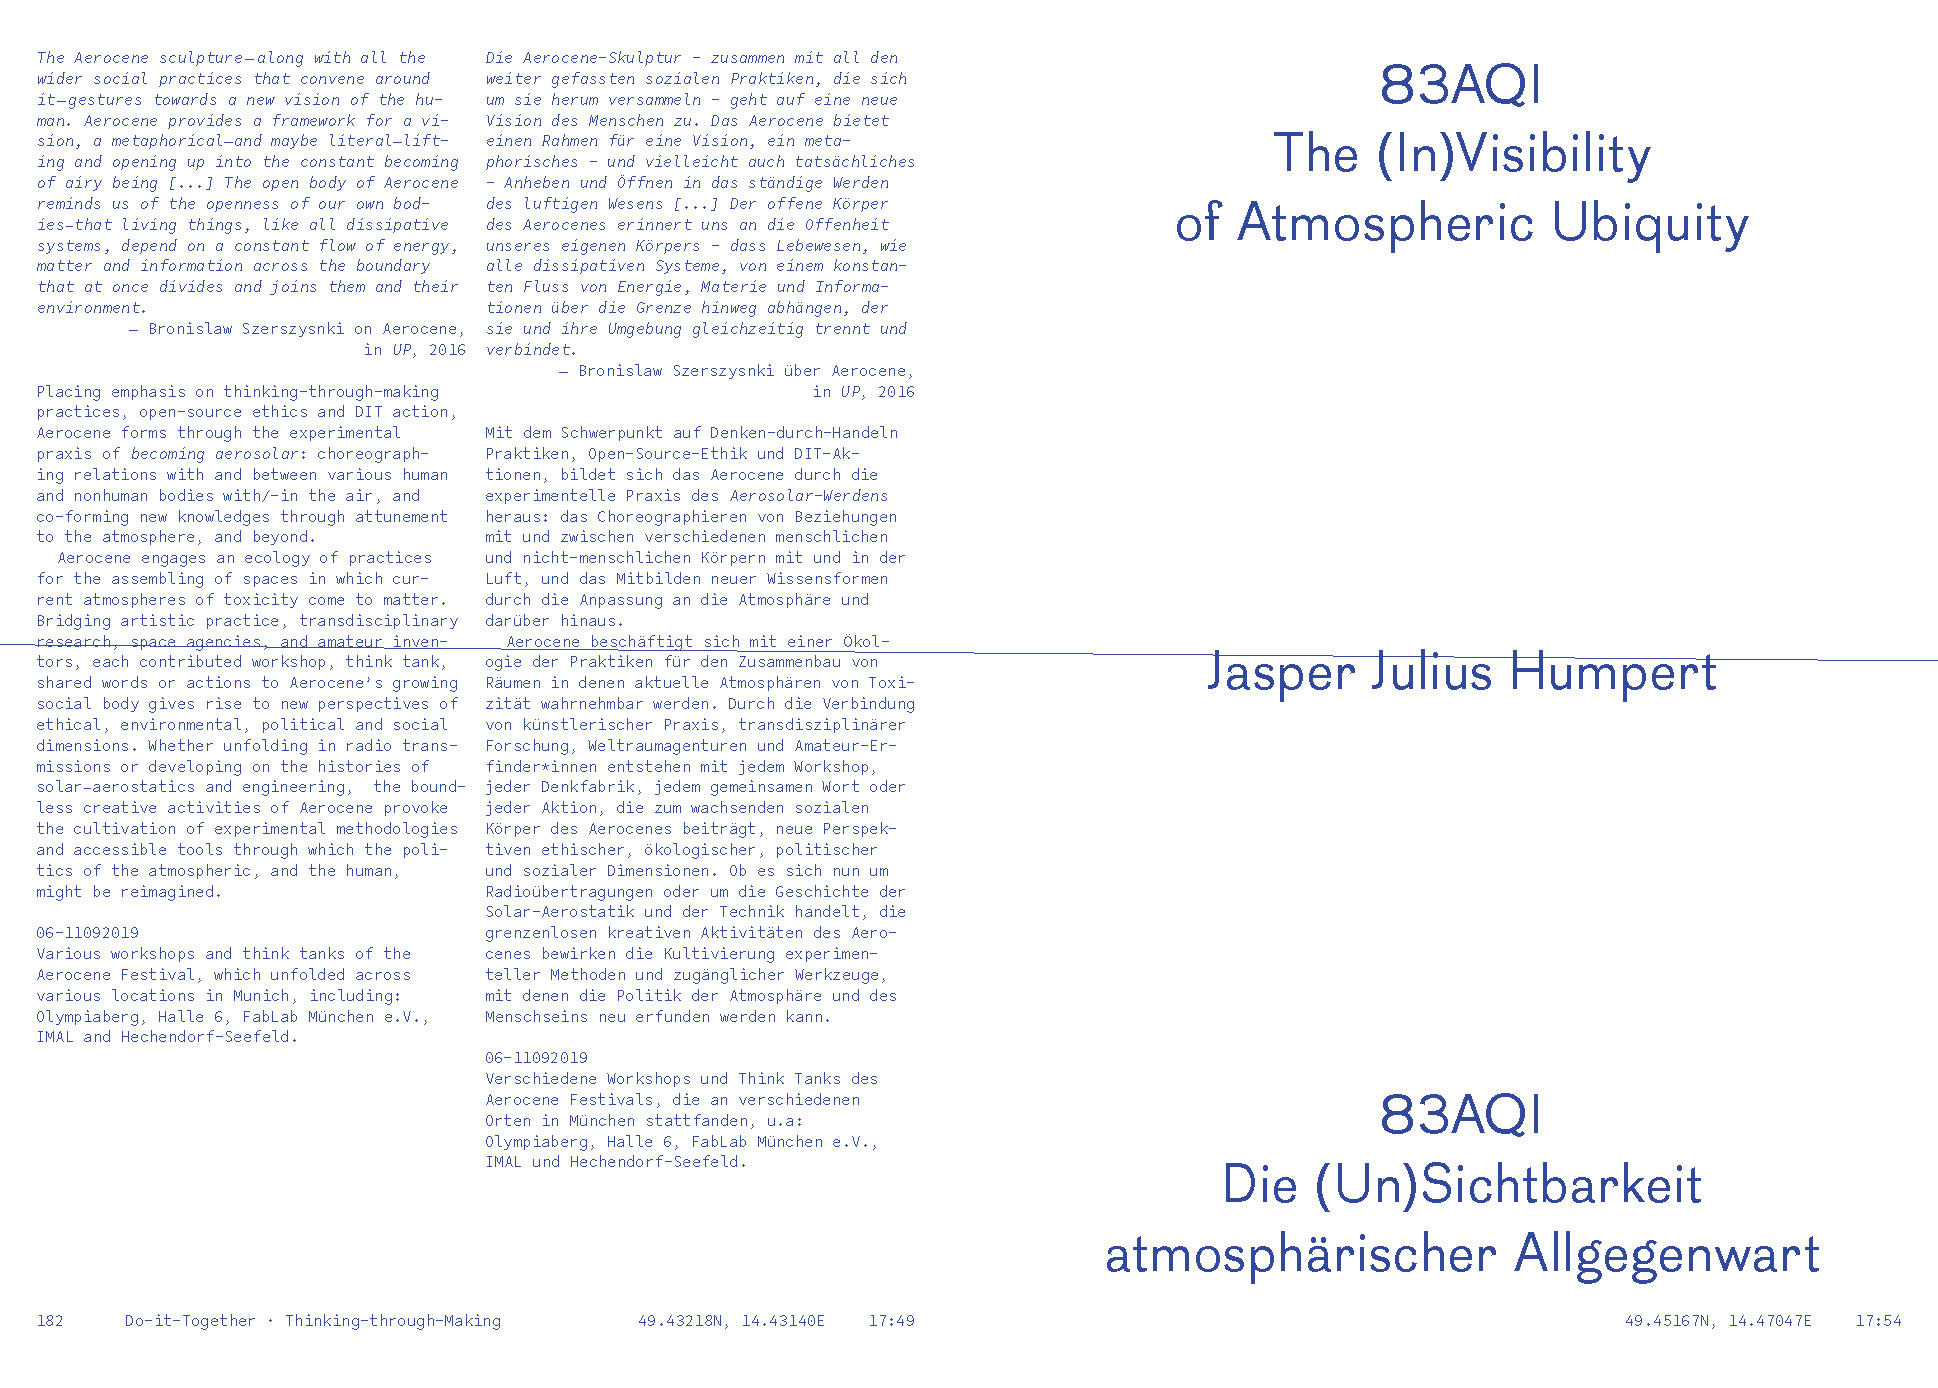 20AE_MovementsfortheAir_Aerocene (1)_Page_092